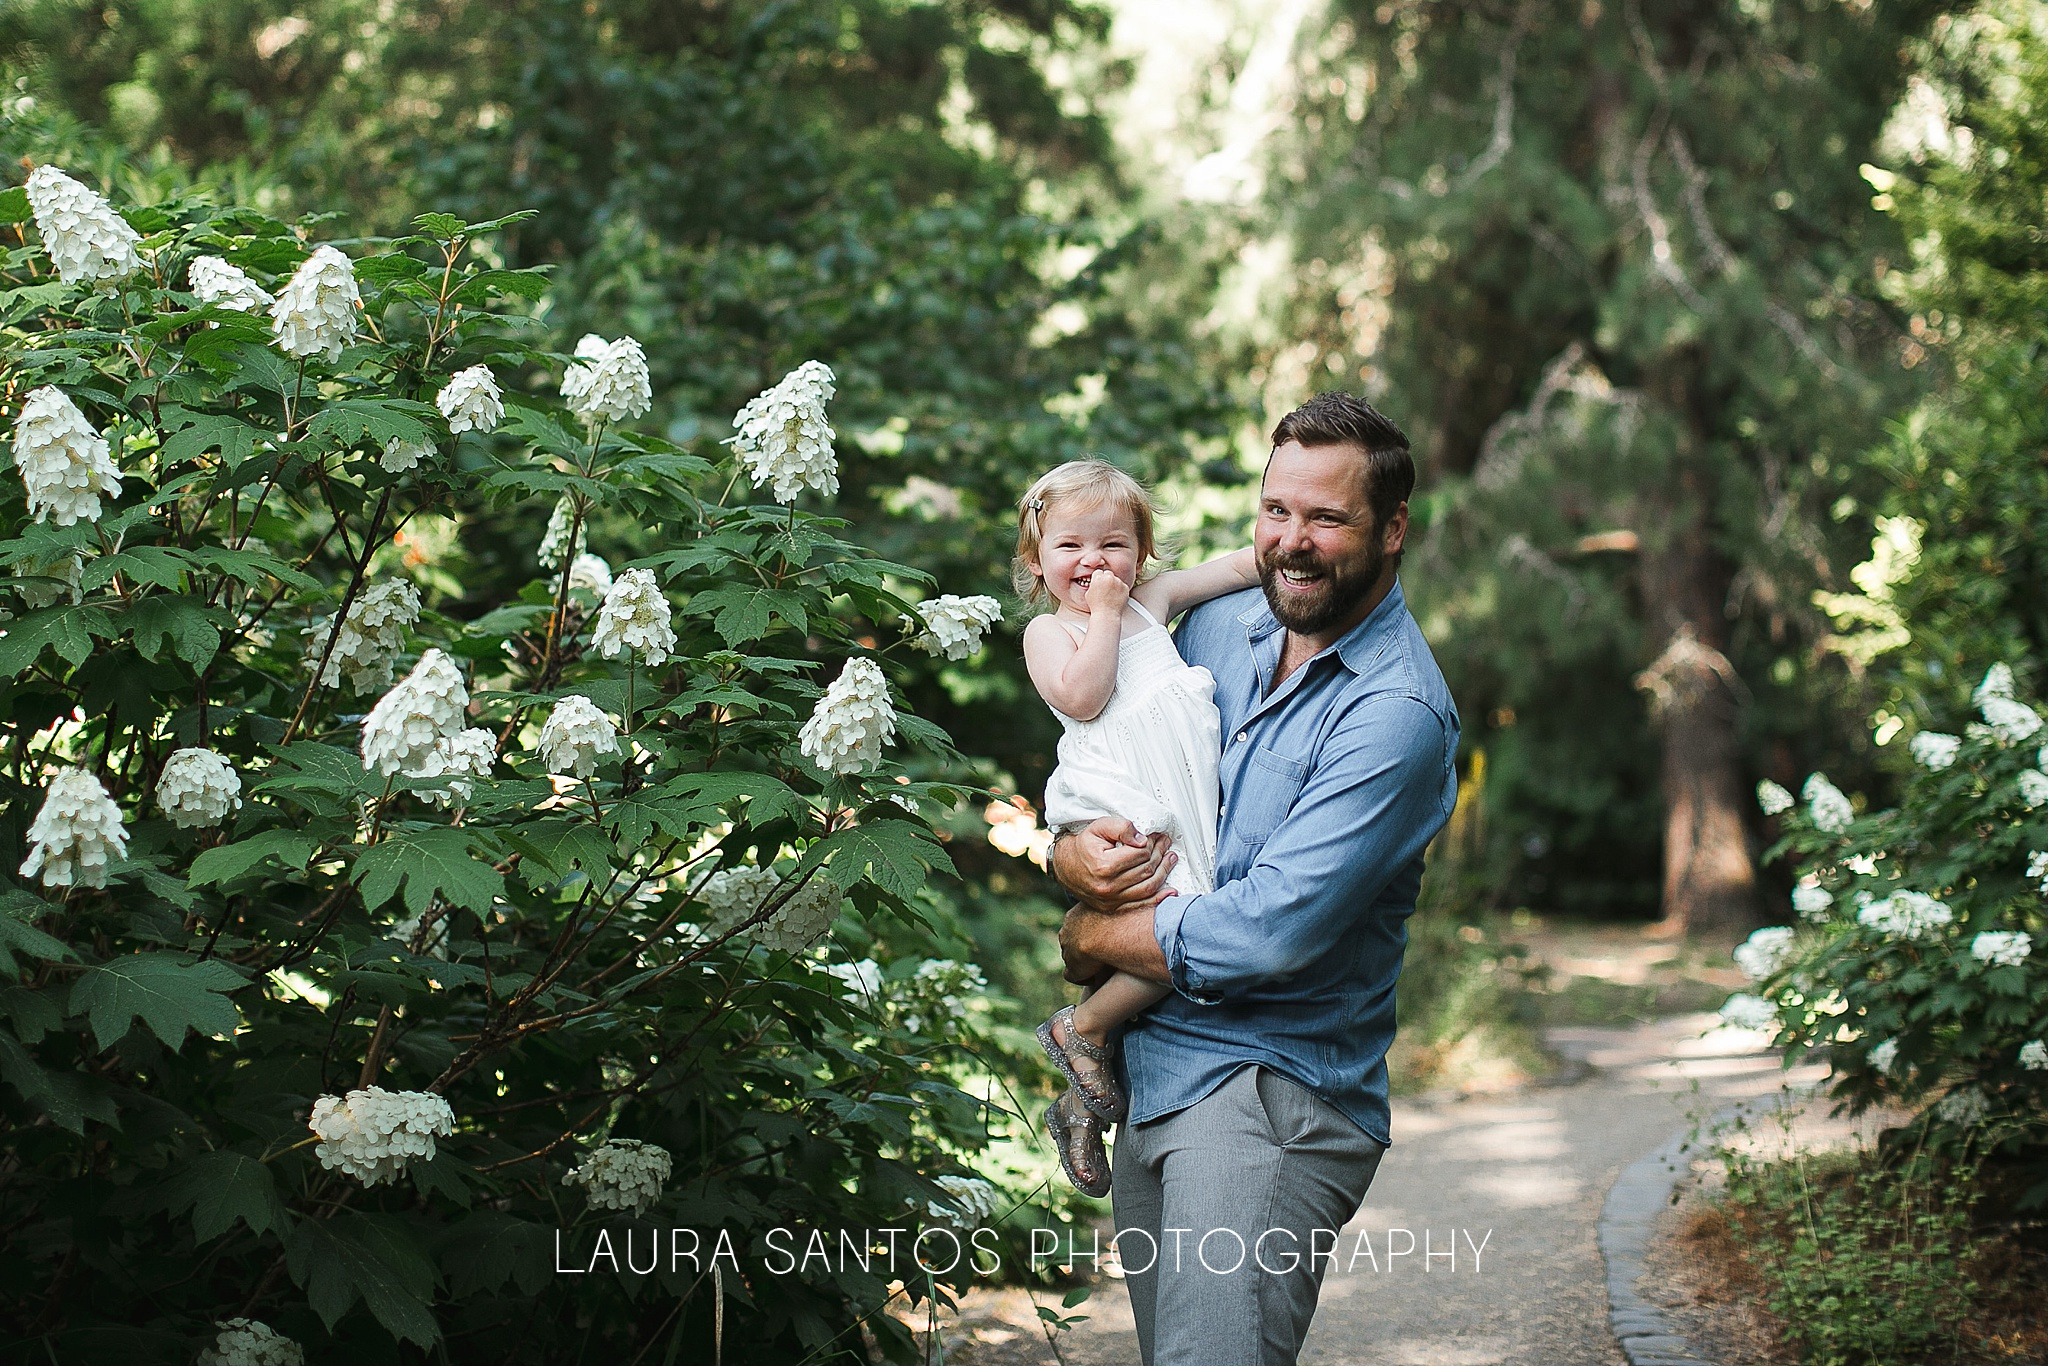 Laura Santos Photography Portland Oregon Family Photographer_1077.jpg